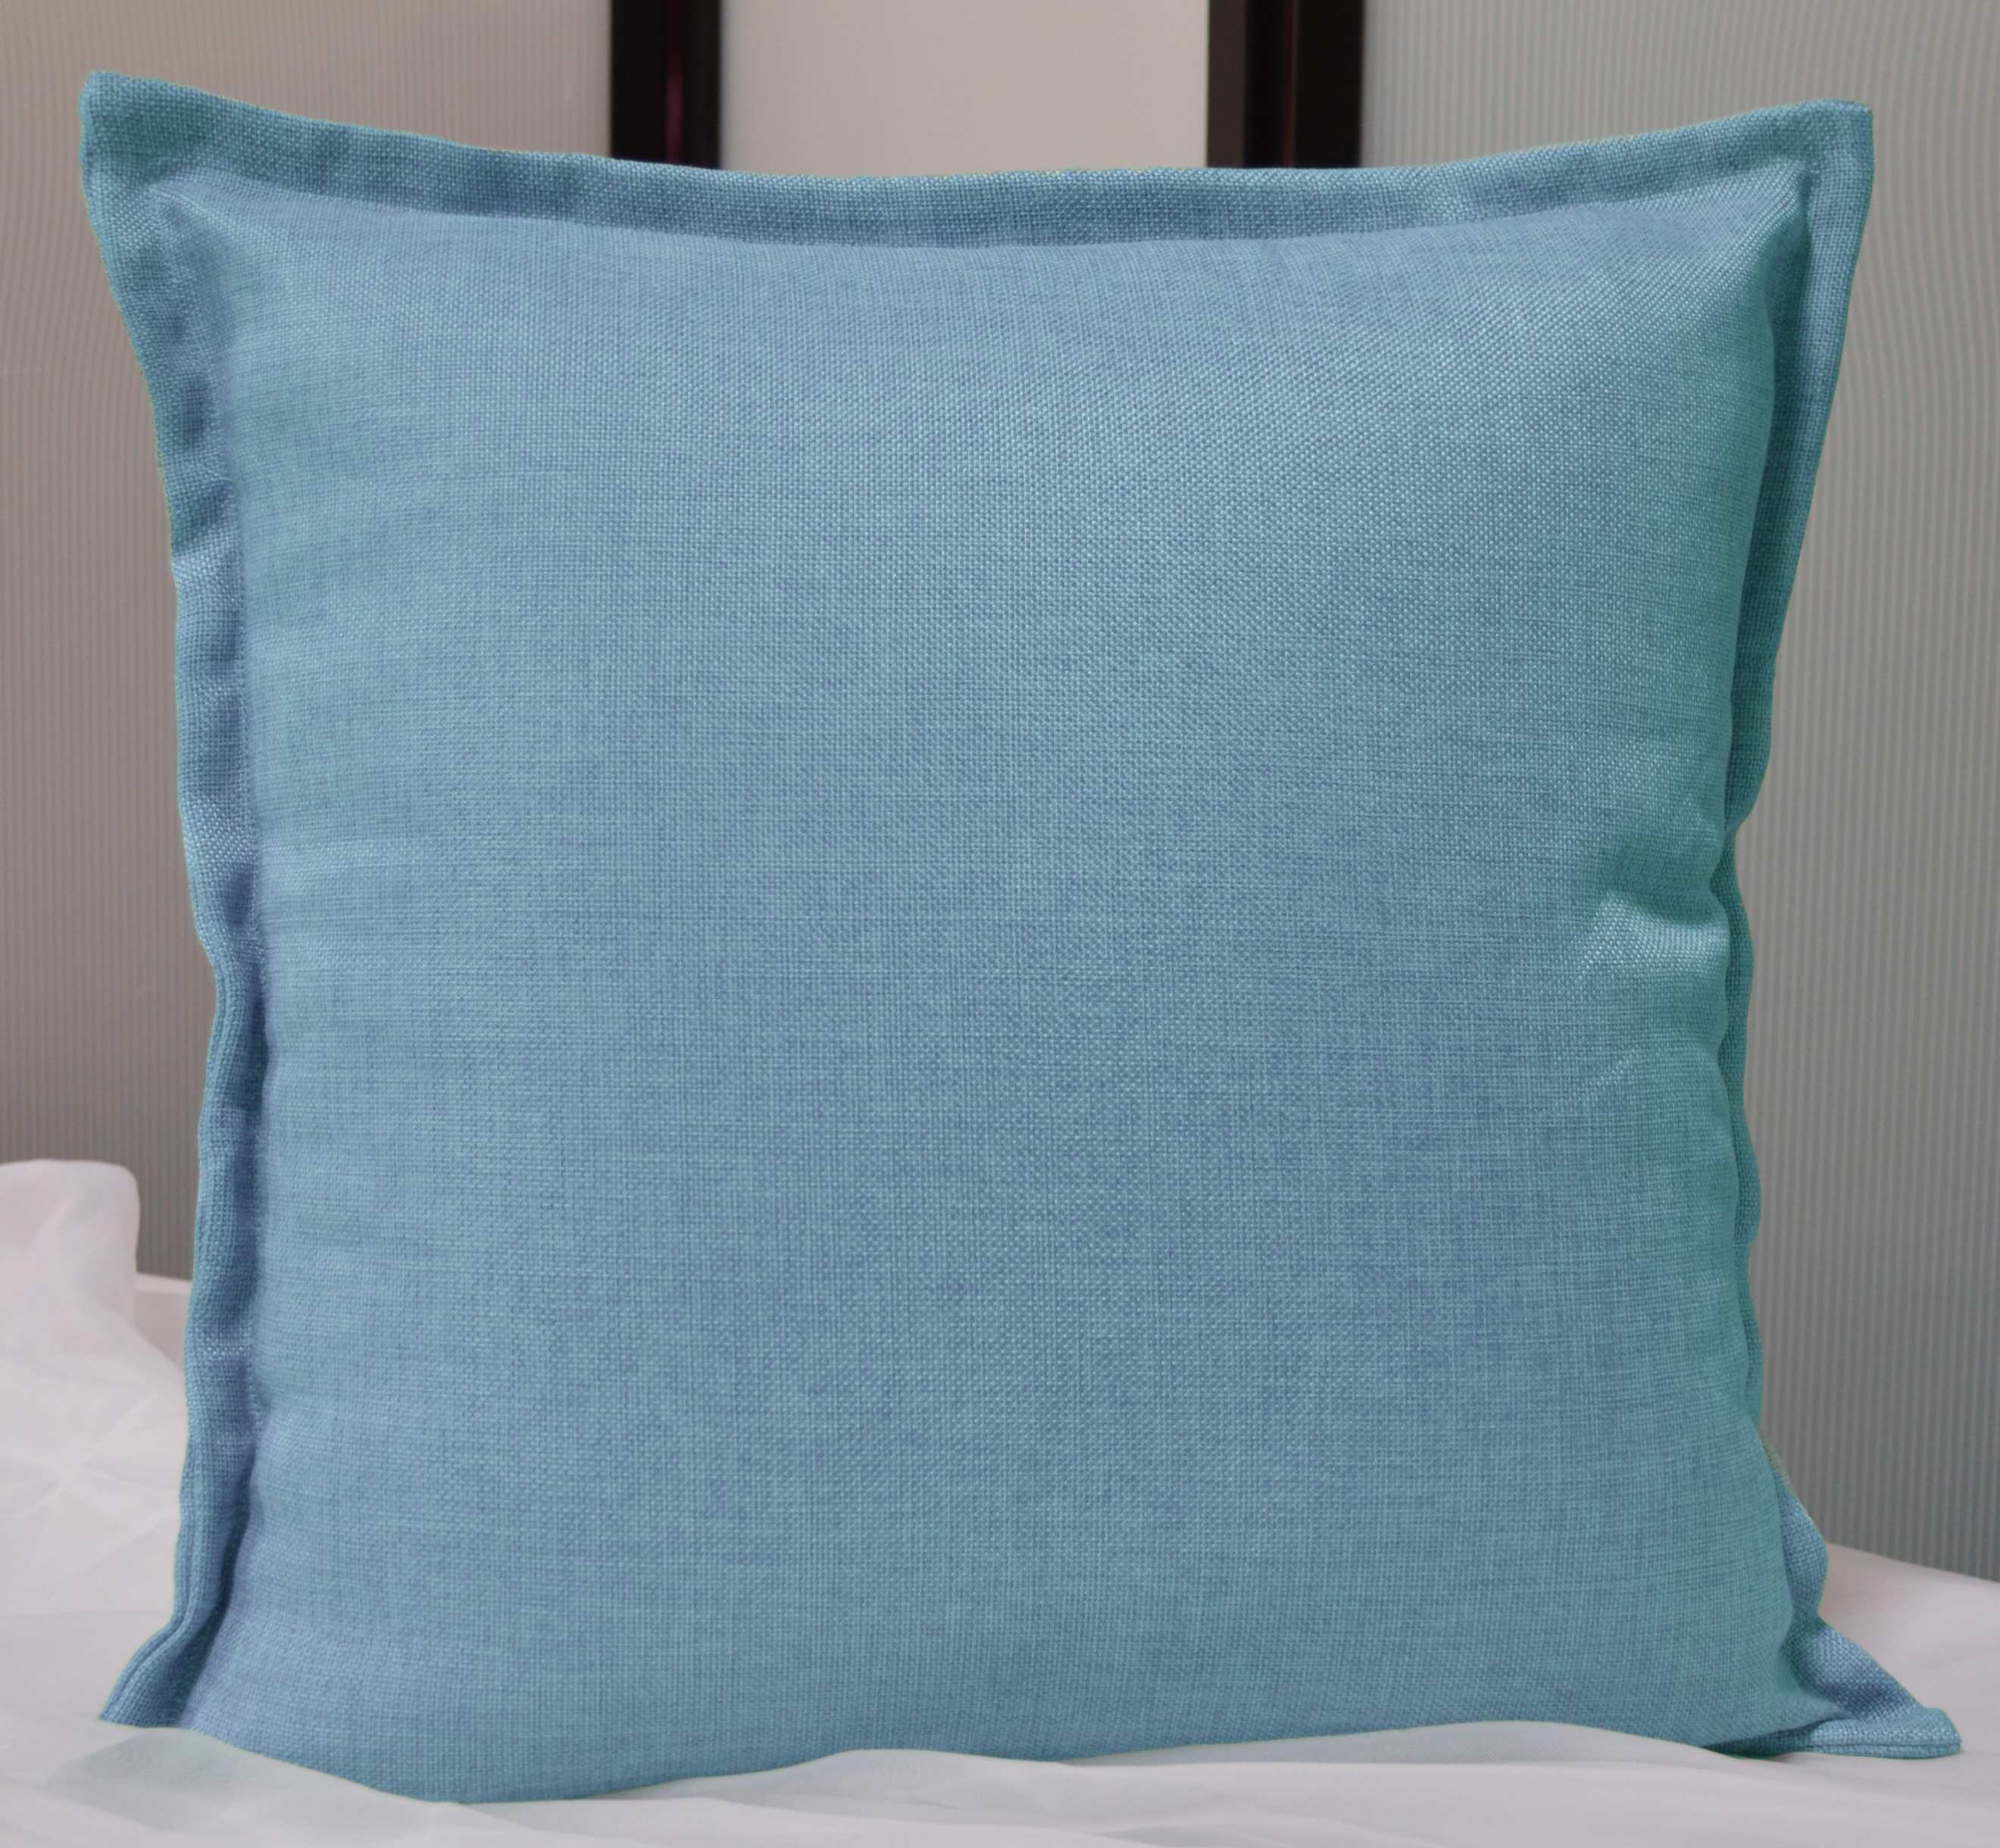 "Aiking Home 18""x18"" Solid Faux Linen Throw Pillow COVER, Baby Blue"